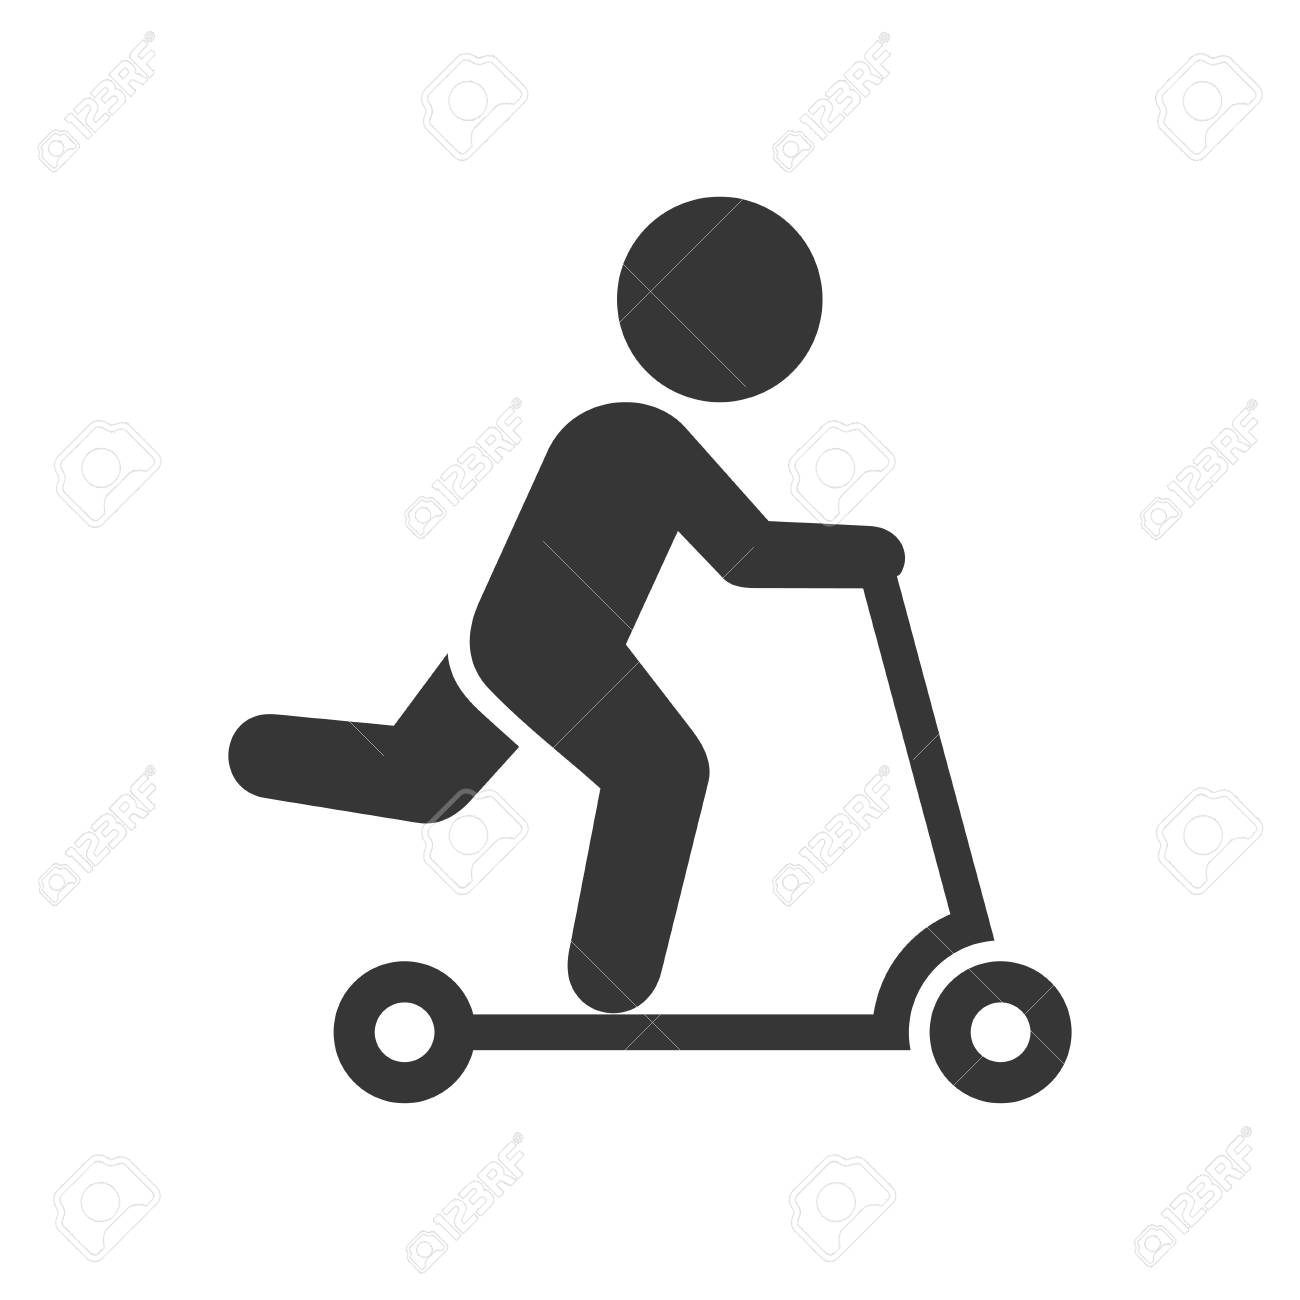 Man on Kick Scooter Icon - 102725221